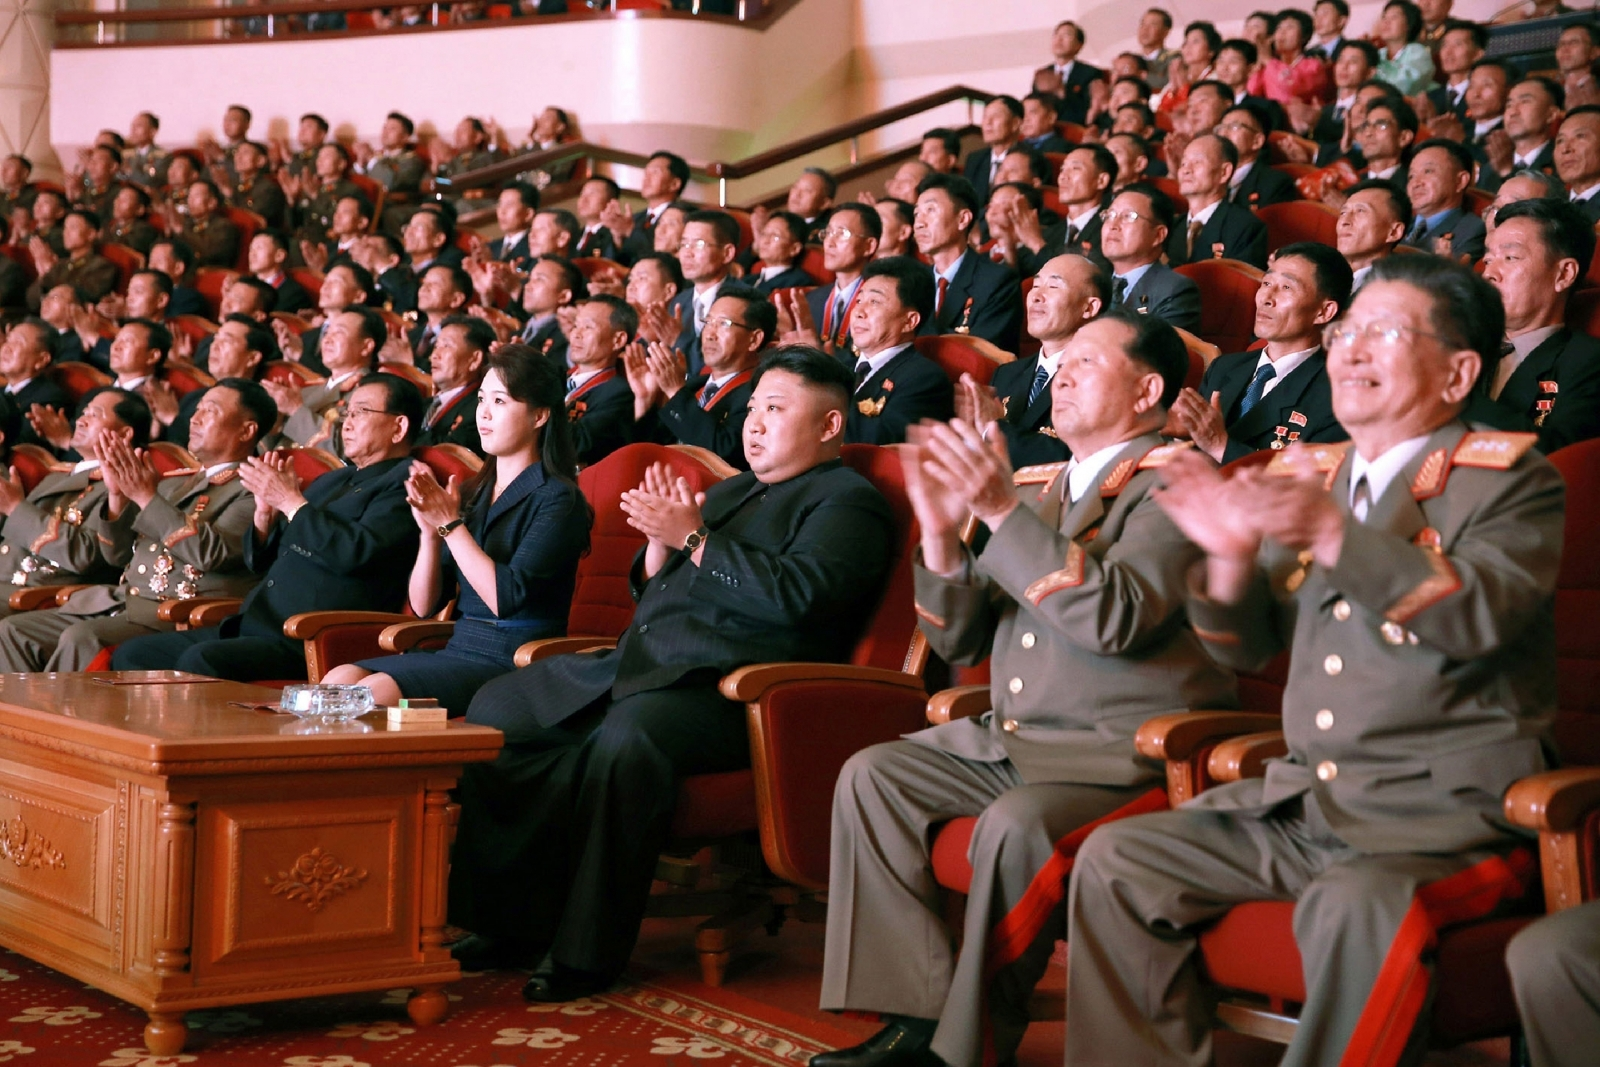 Unanimous: New Sanctions Against North Korea